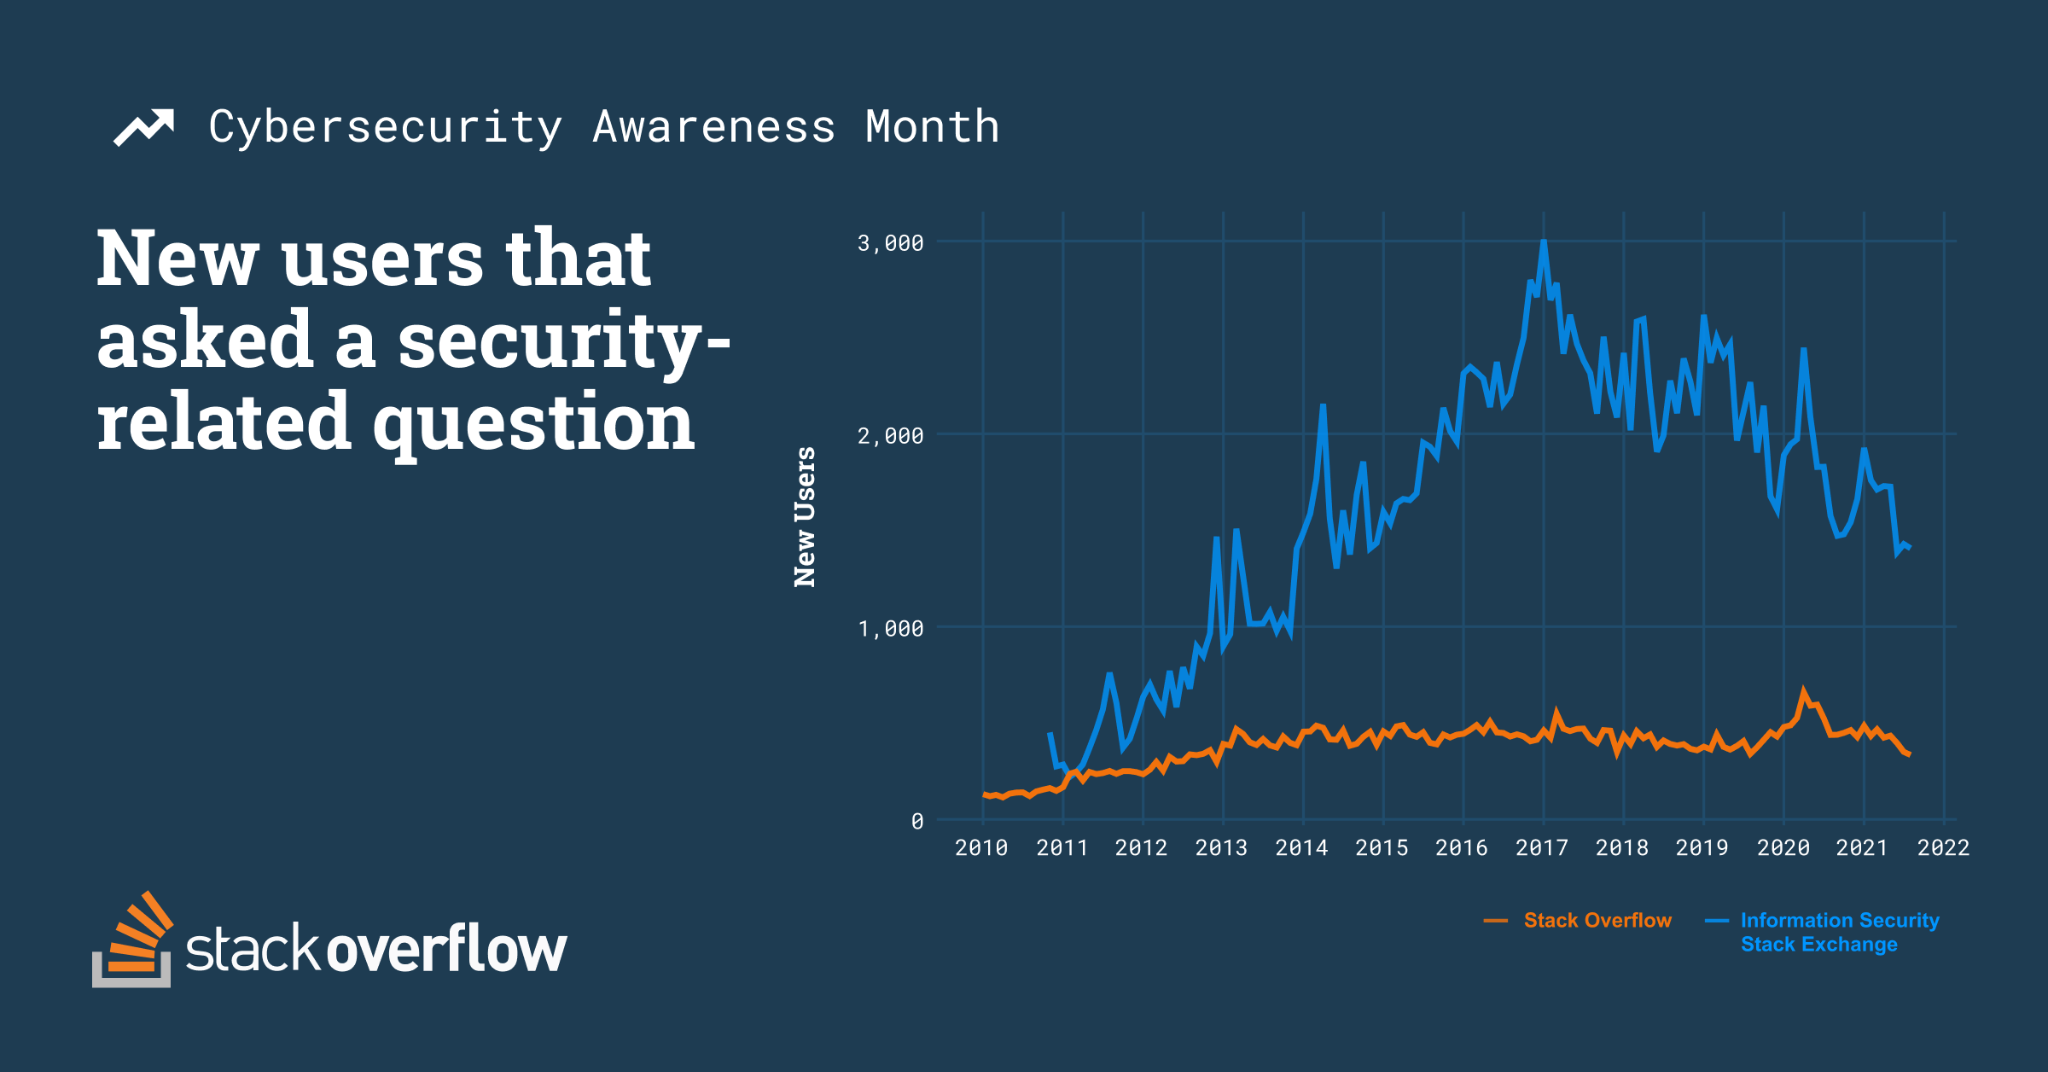 Time series chart company new users to Stack Overflow that asked a security question and new users on Information Security Stack Exchange site. Stack Overflow peaked in early 2020 during the pandemic reaching, and Information Security Stack Exchange questions peaked in late 2016 after significant data breaches reaching 3,000 users.